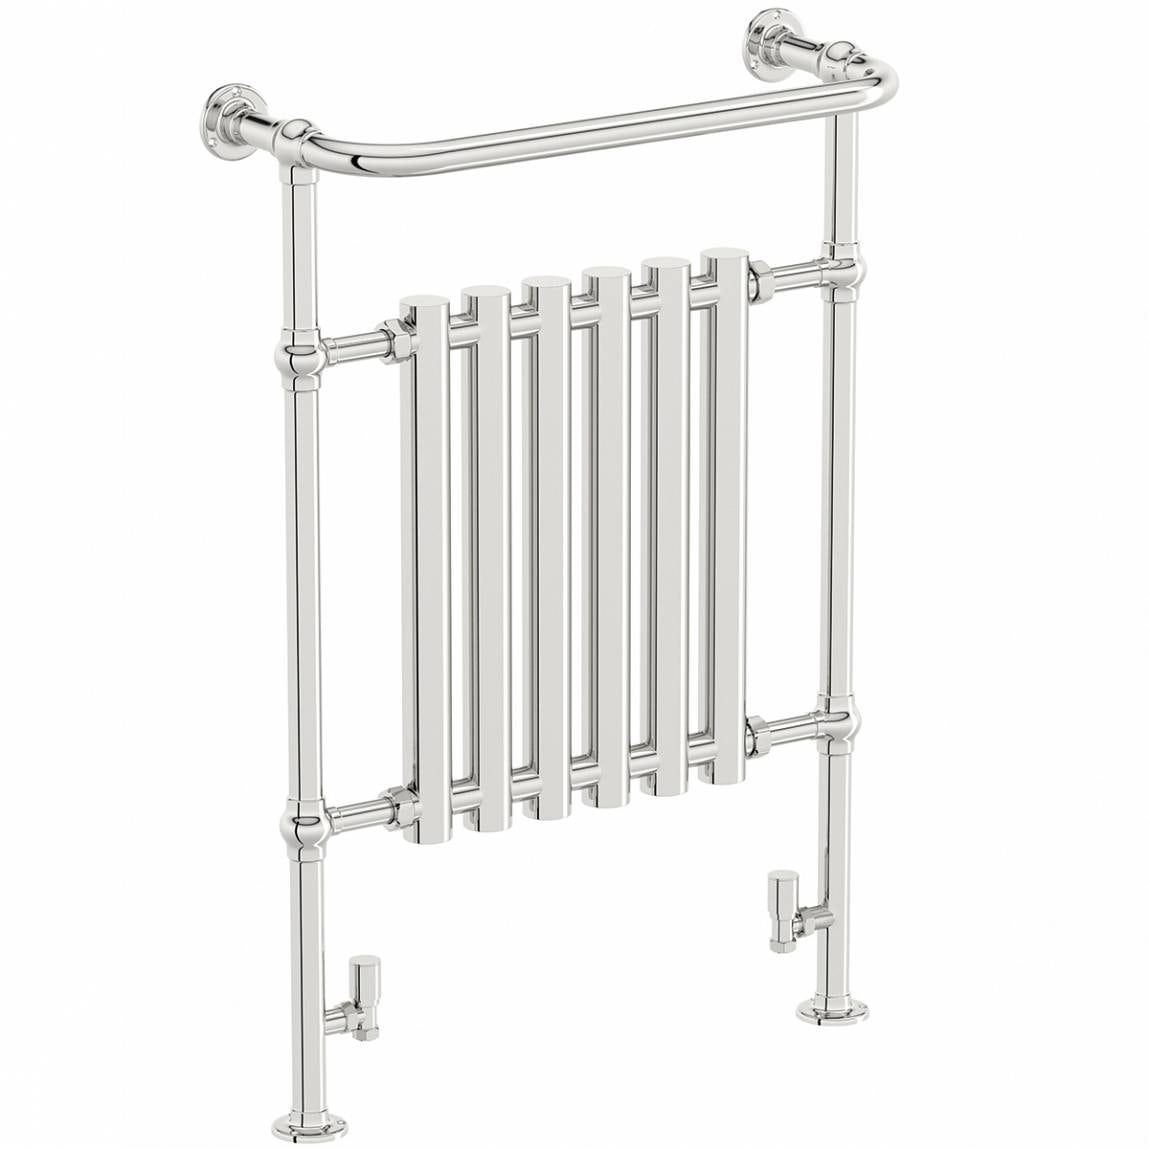 The Bath Co. Camberley radiator 952 x 659 offer pack